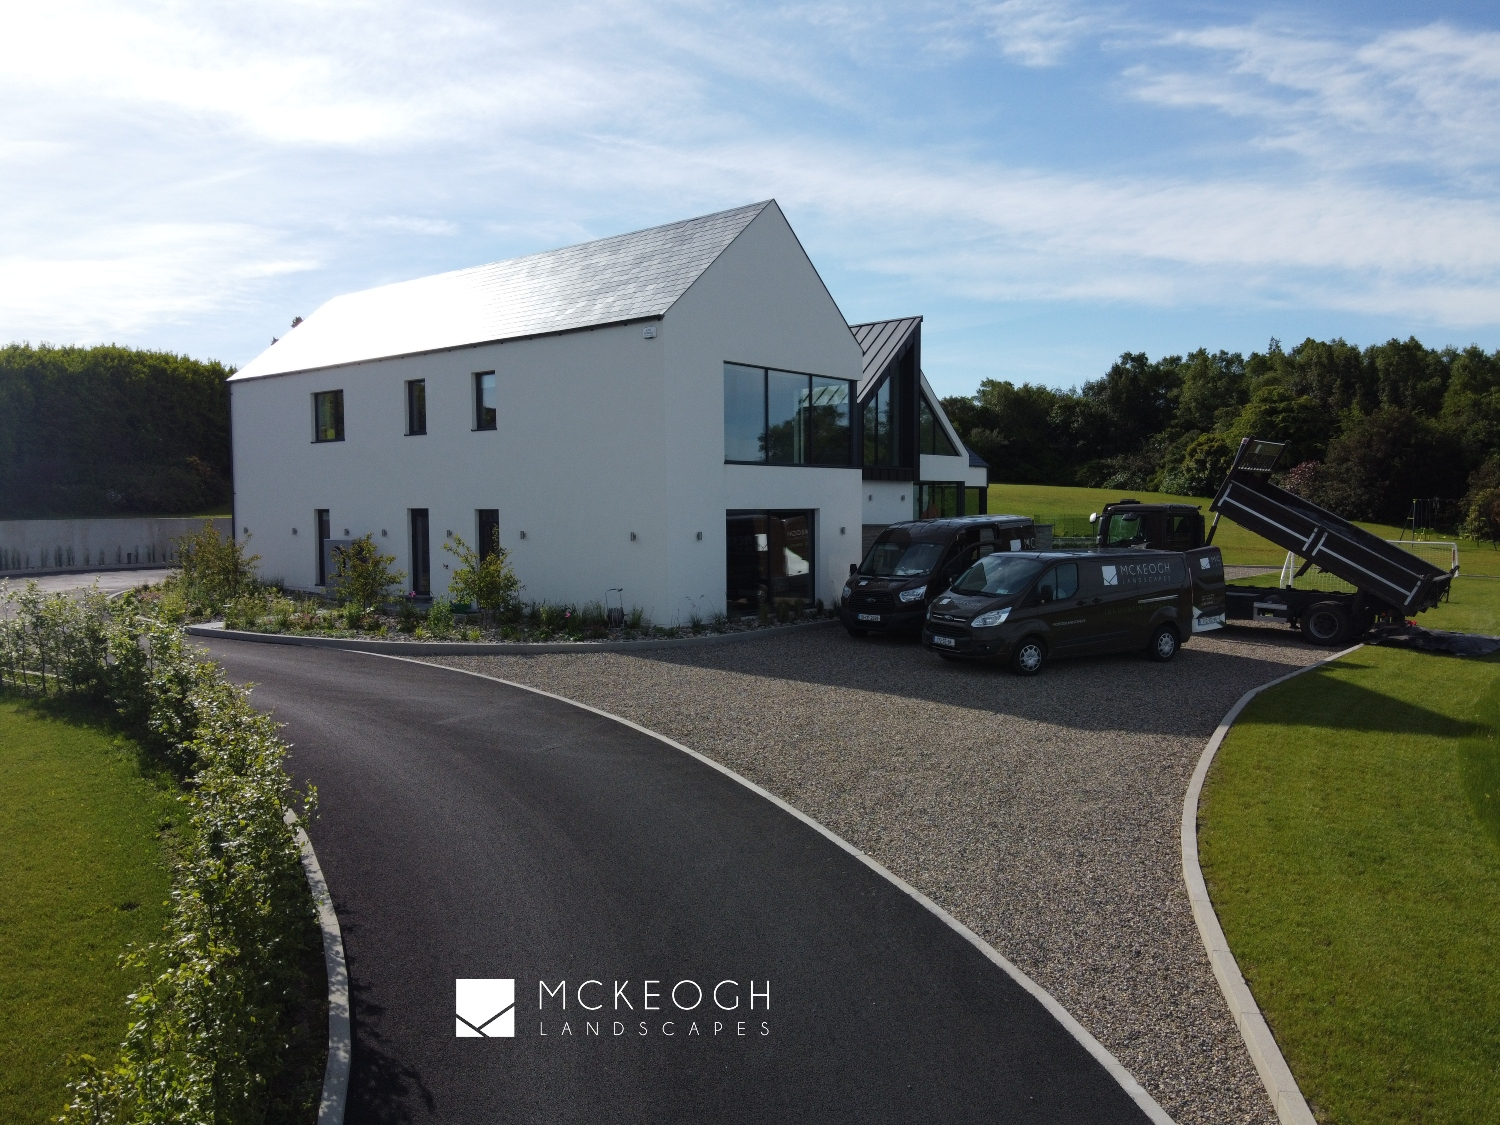 Using a mix of Tarmac and loose stone chips for this large driveway